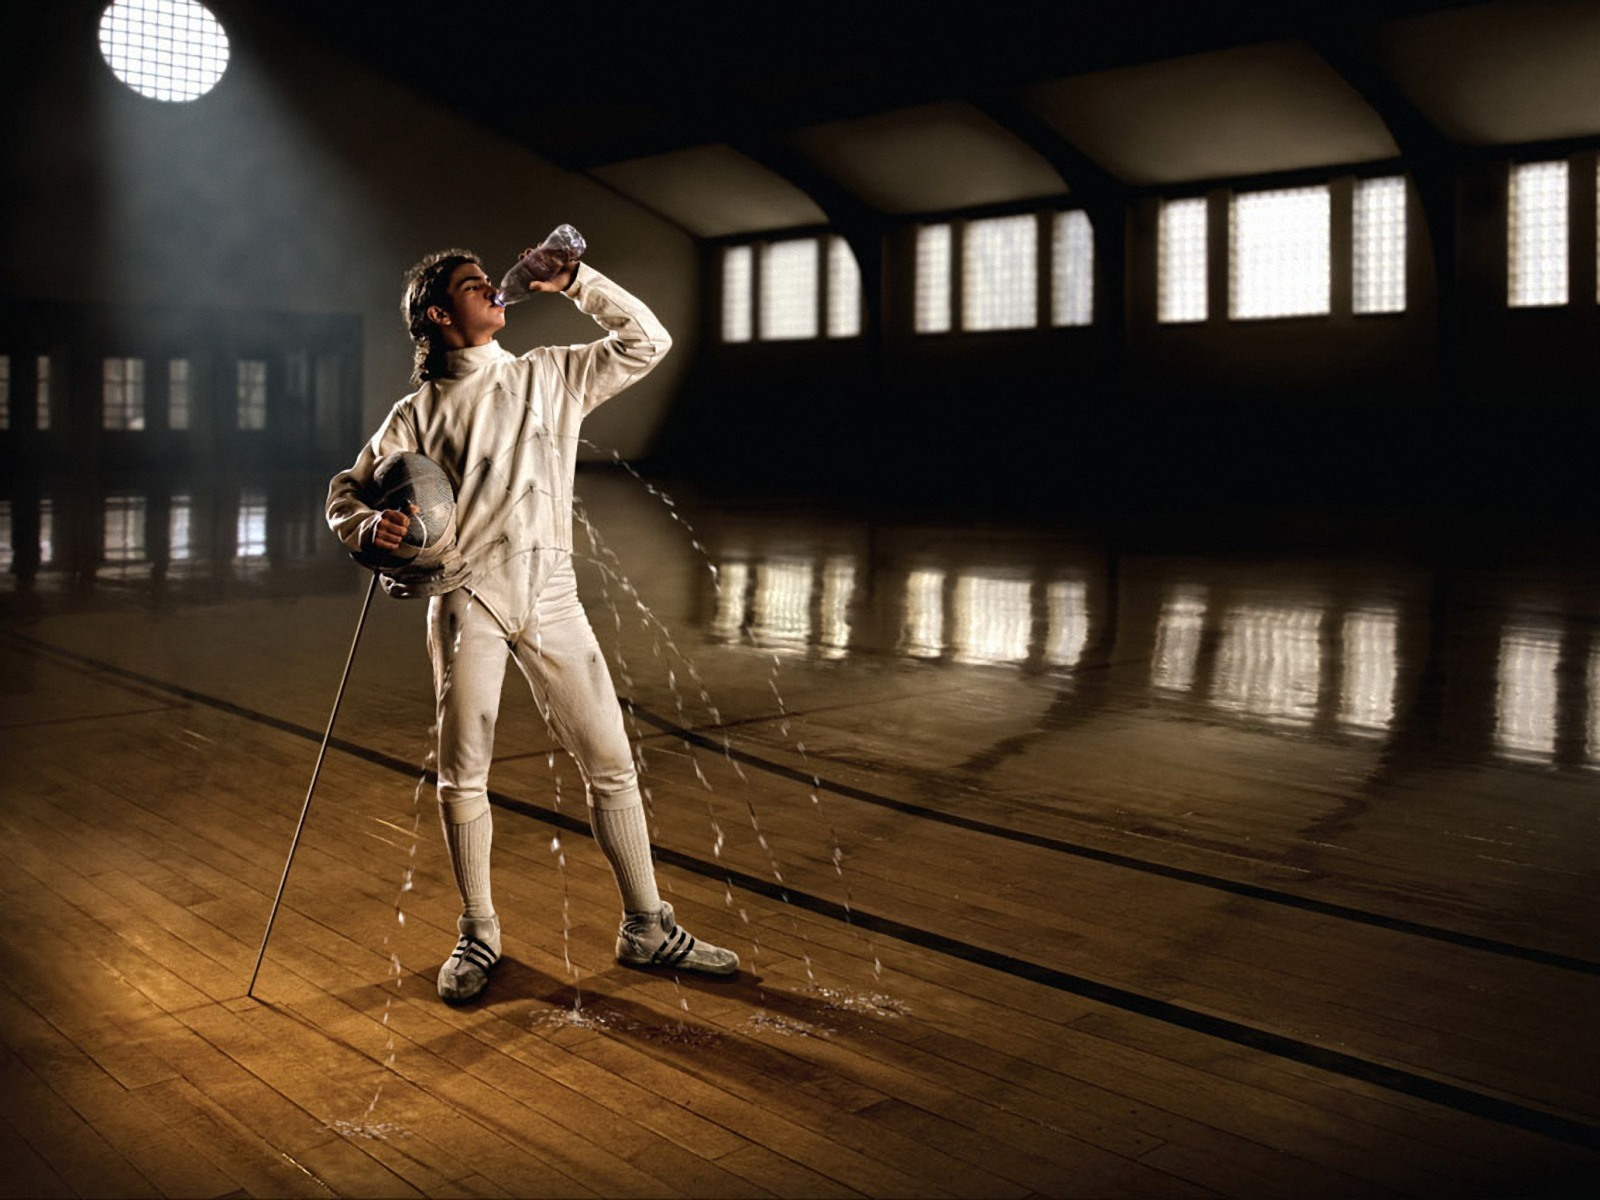 1600x1200 - Fencing Wallpapers 17